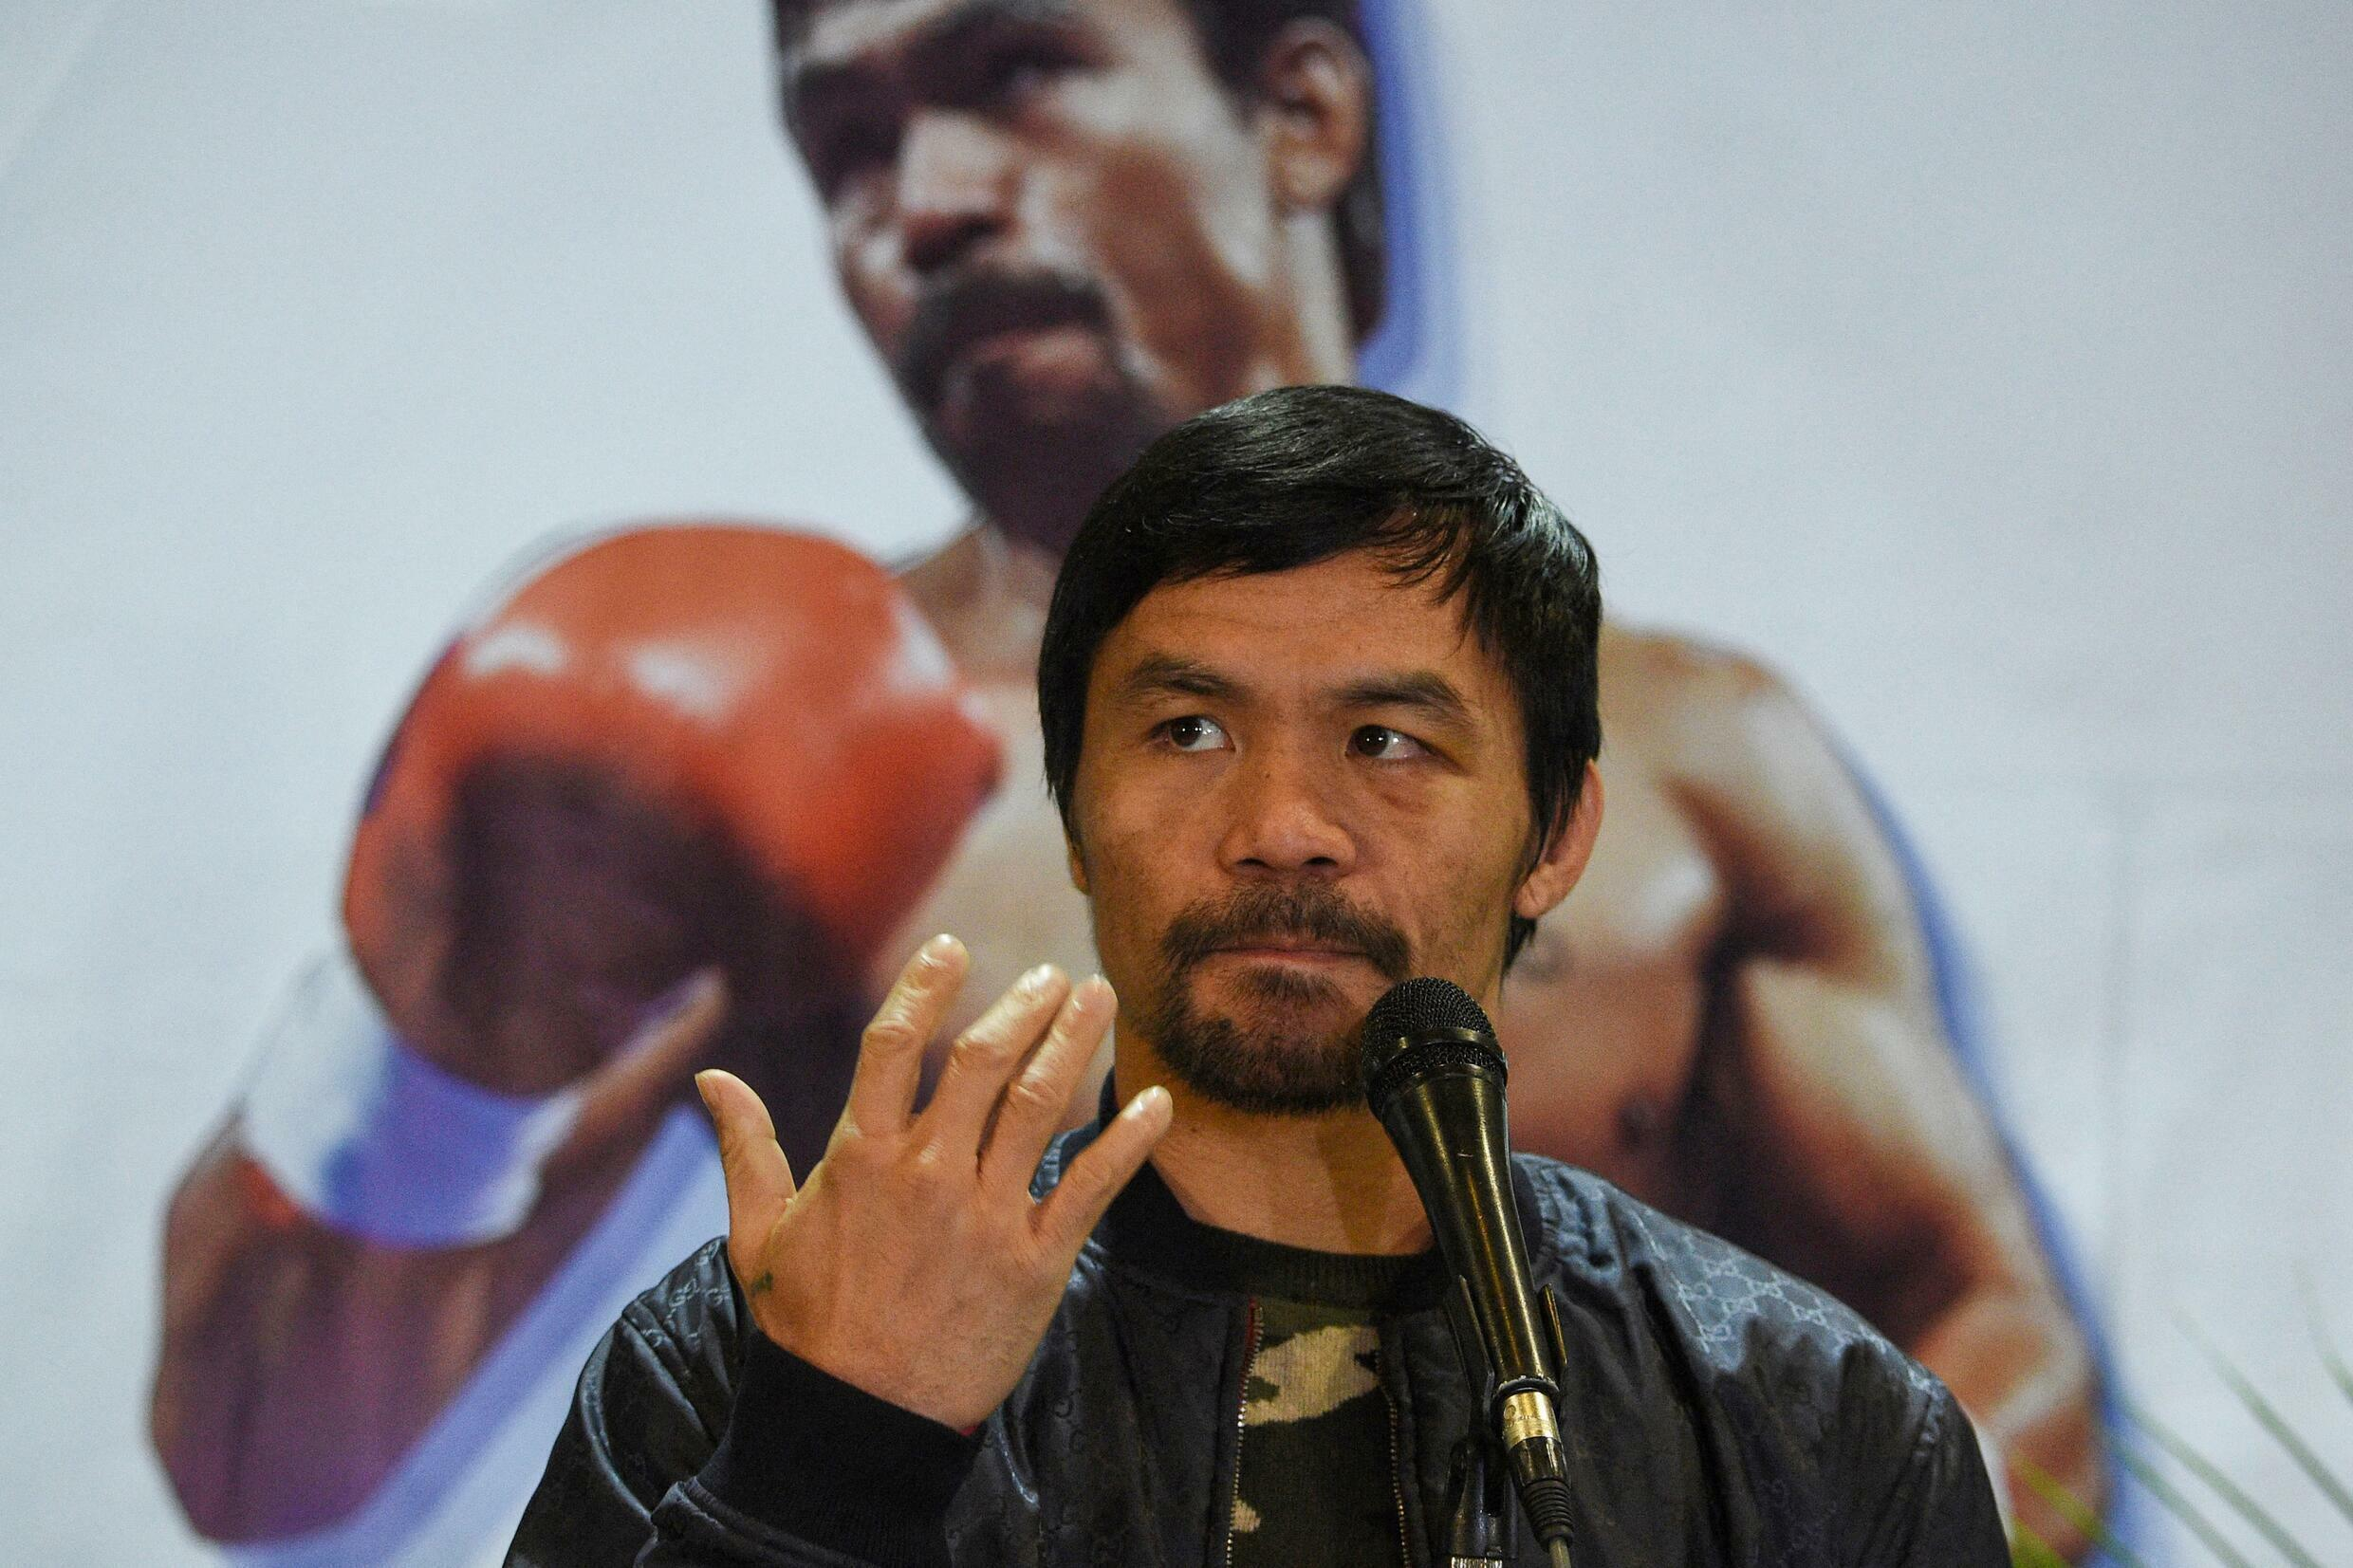 Philippine boxer-turned-politician Manny Pacquiao stepped into the ring for the country's 2022 presidential race